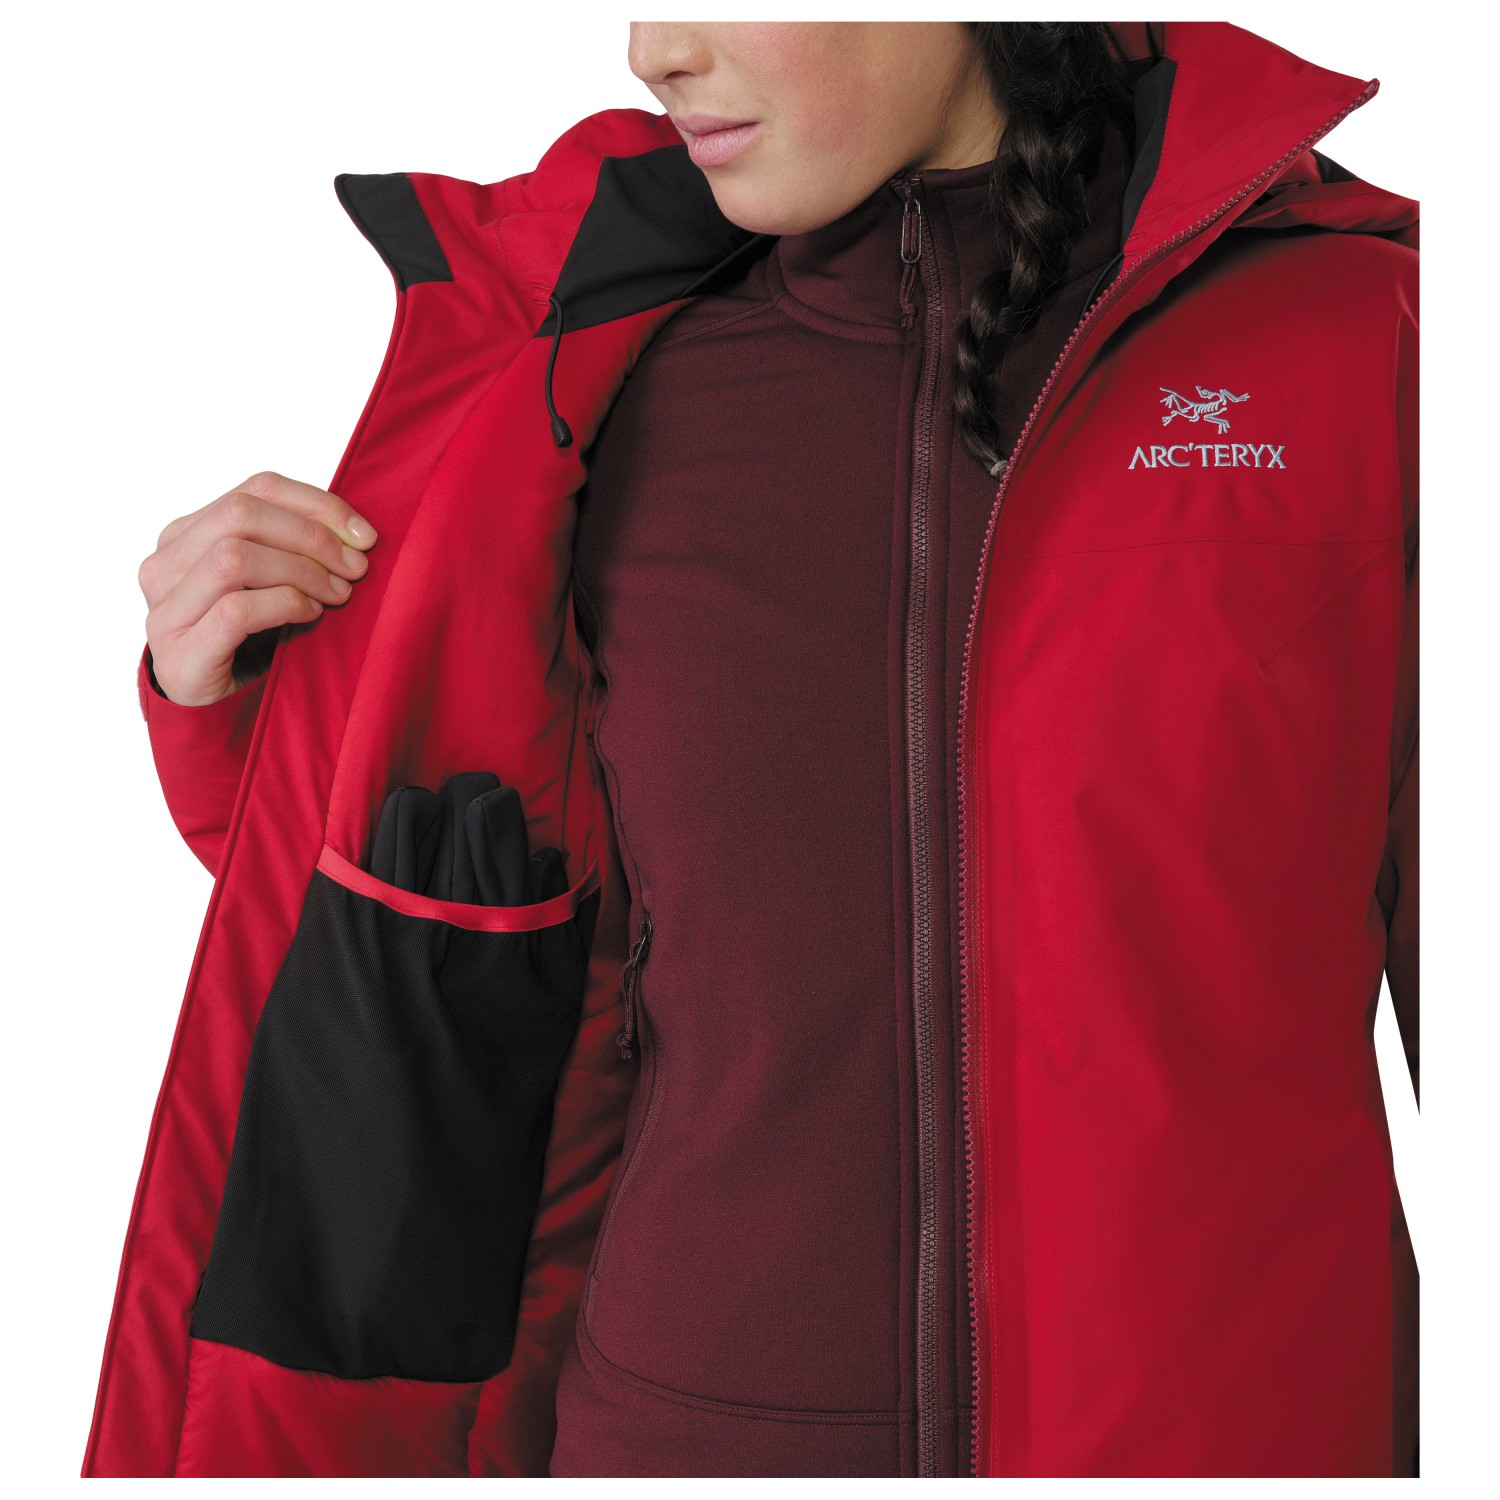 952a0b087c Arc'teryx Fission SV Jacket - Winter Jacket Women's | Free UK ...